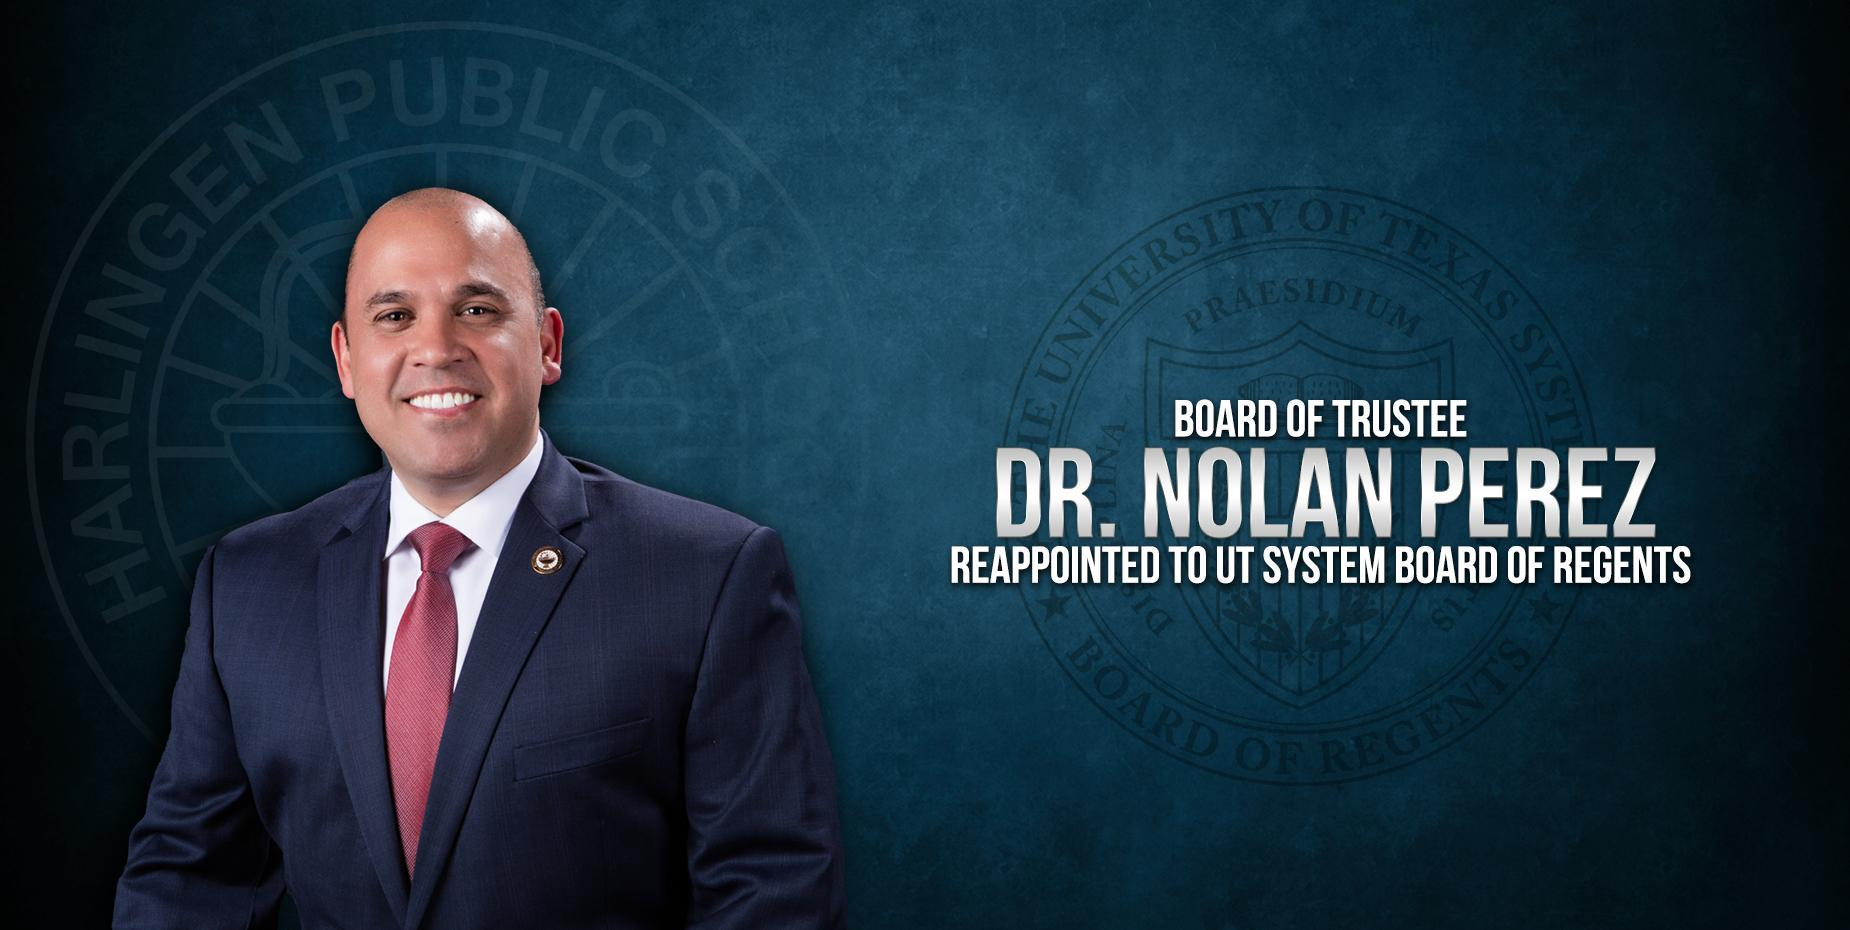 Dr Nolan Perez Reappointed